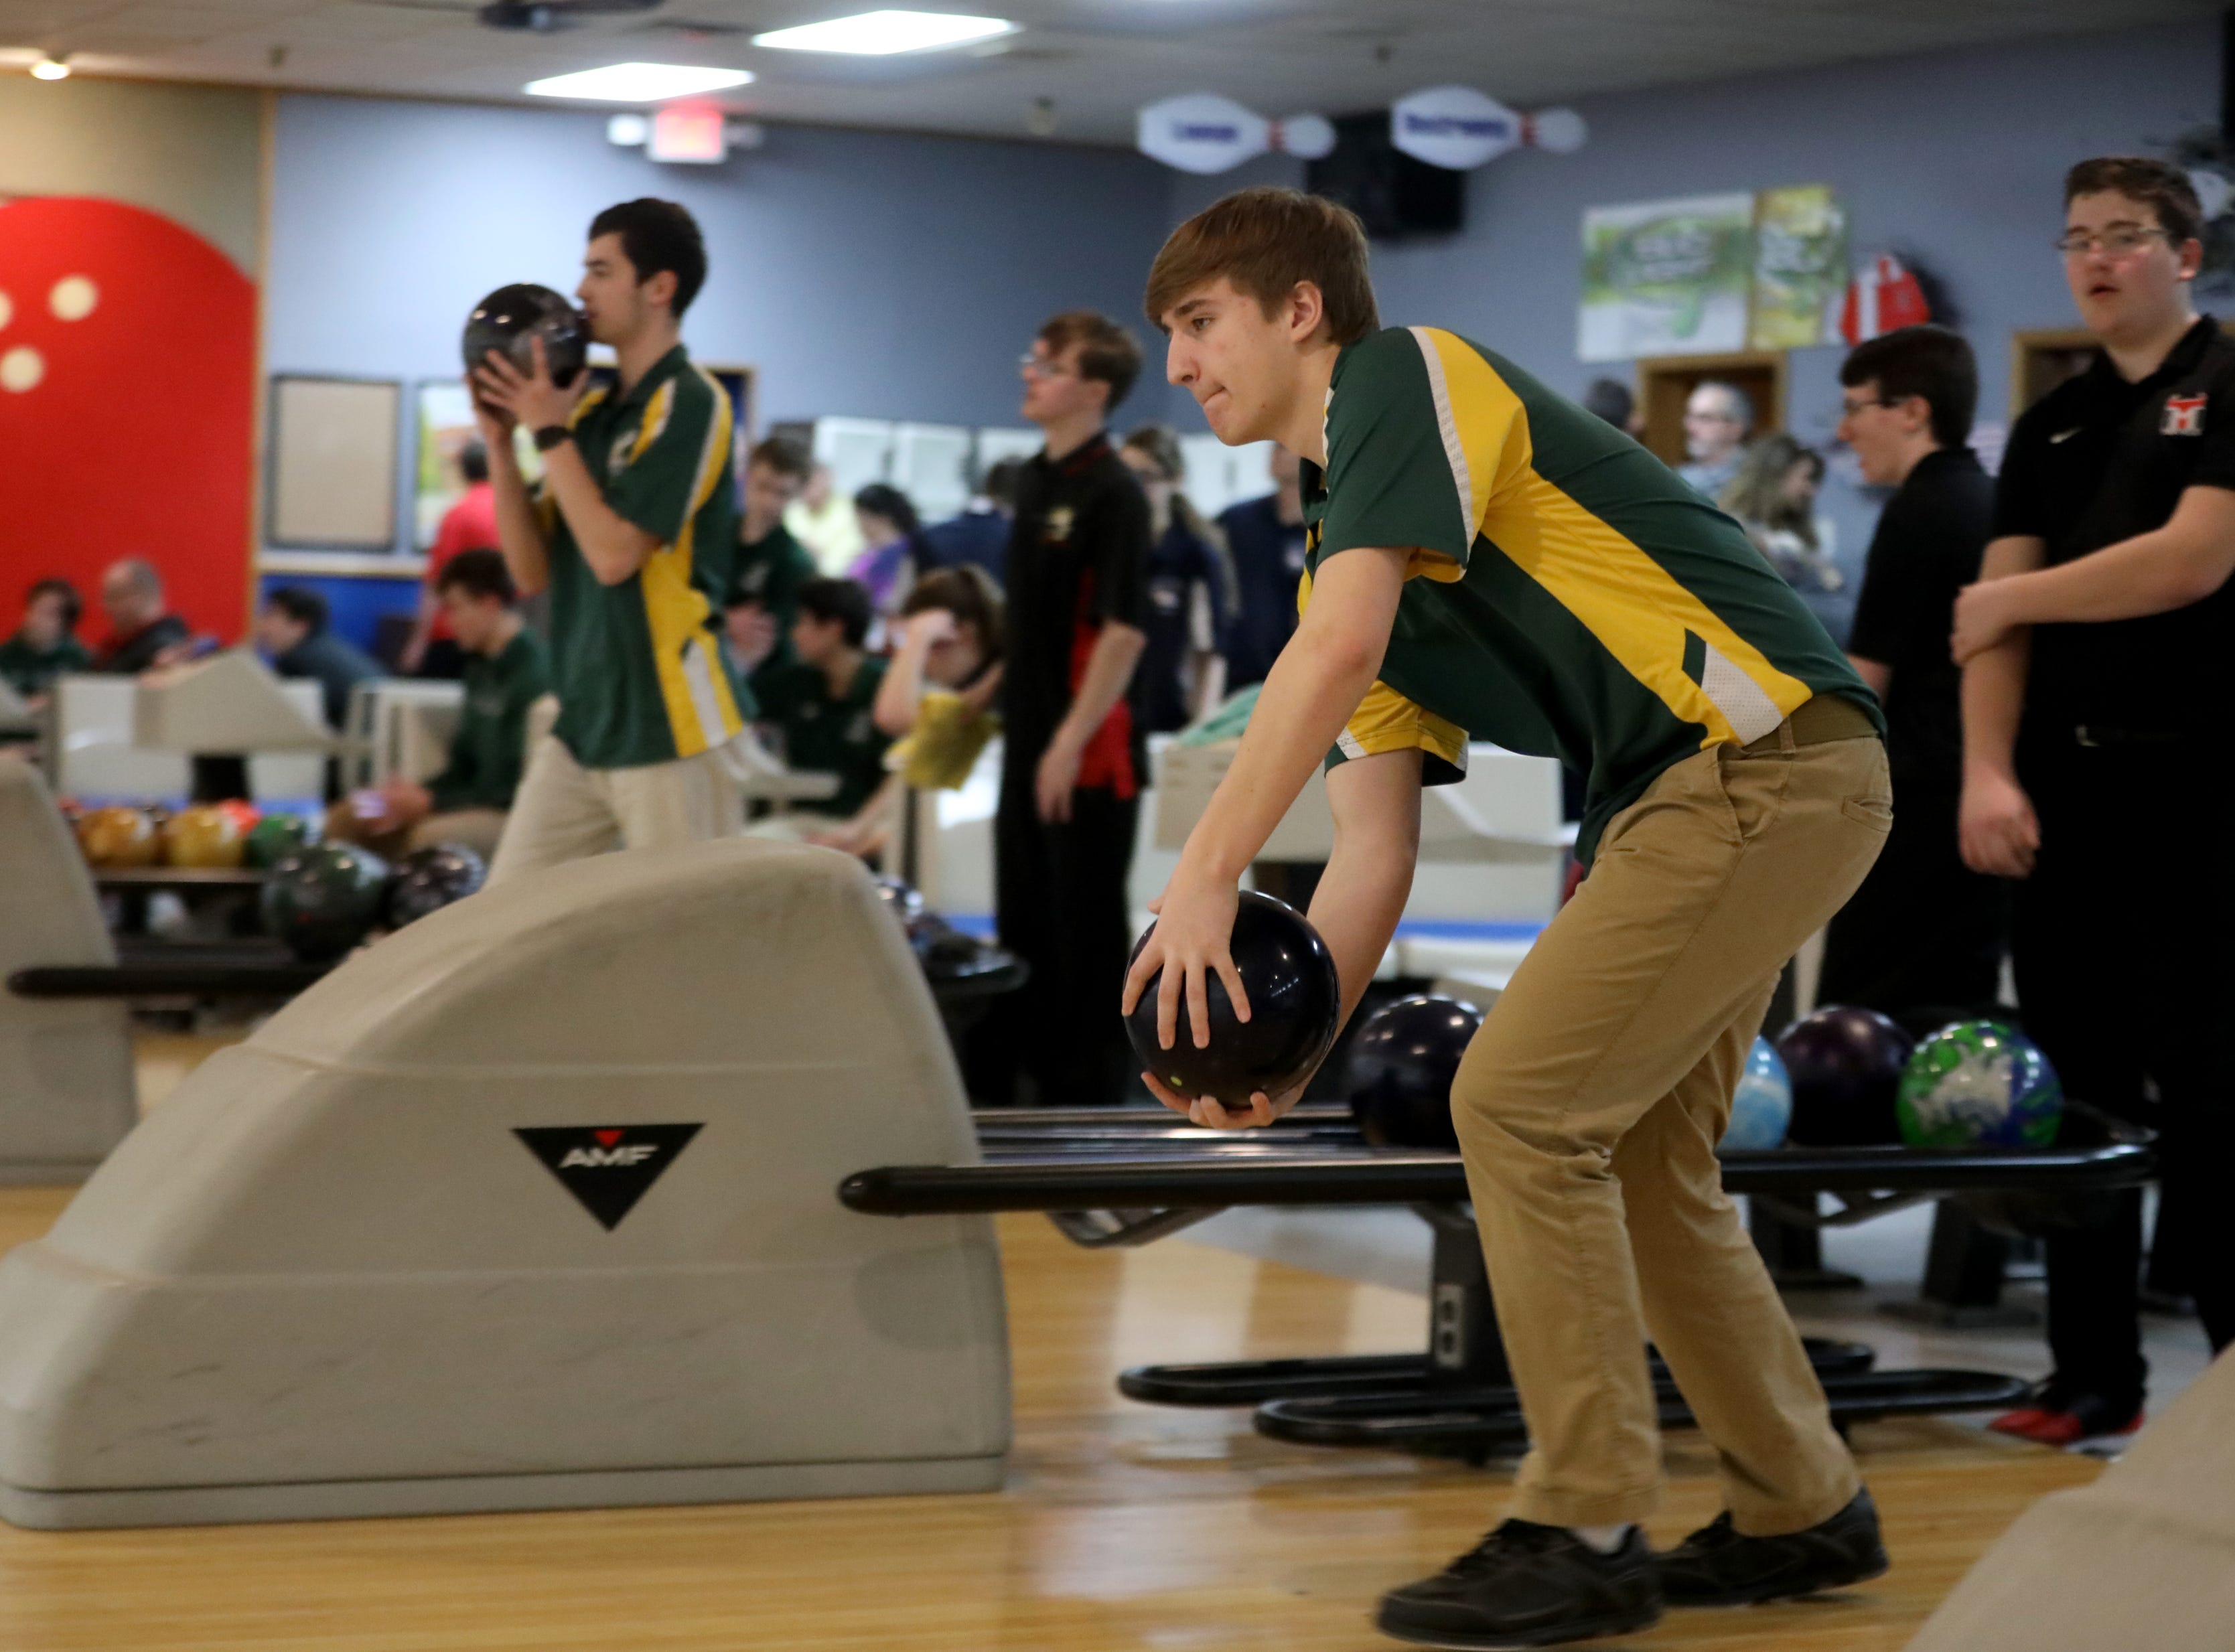 Tyler Johnson, of Morris Knolls, competes in the Morris County Bowling Tournament. Thursday, January 24, 2019